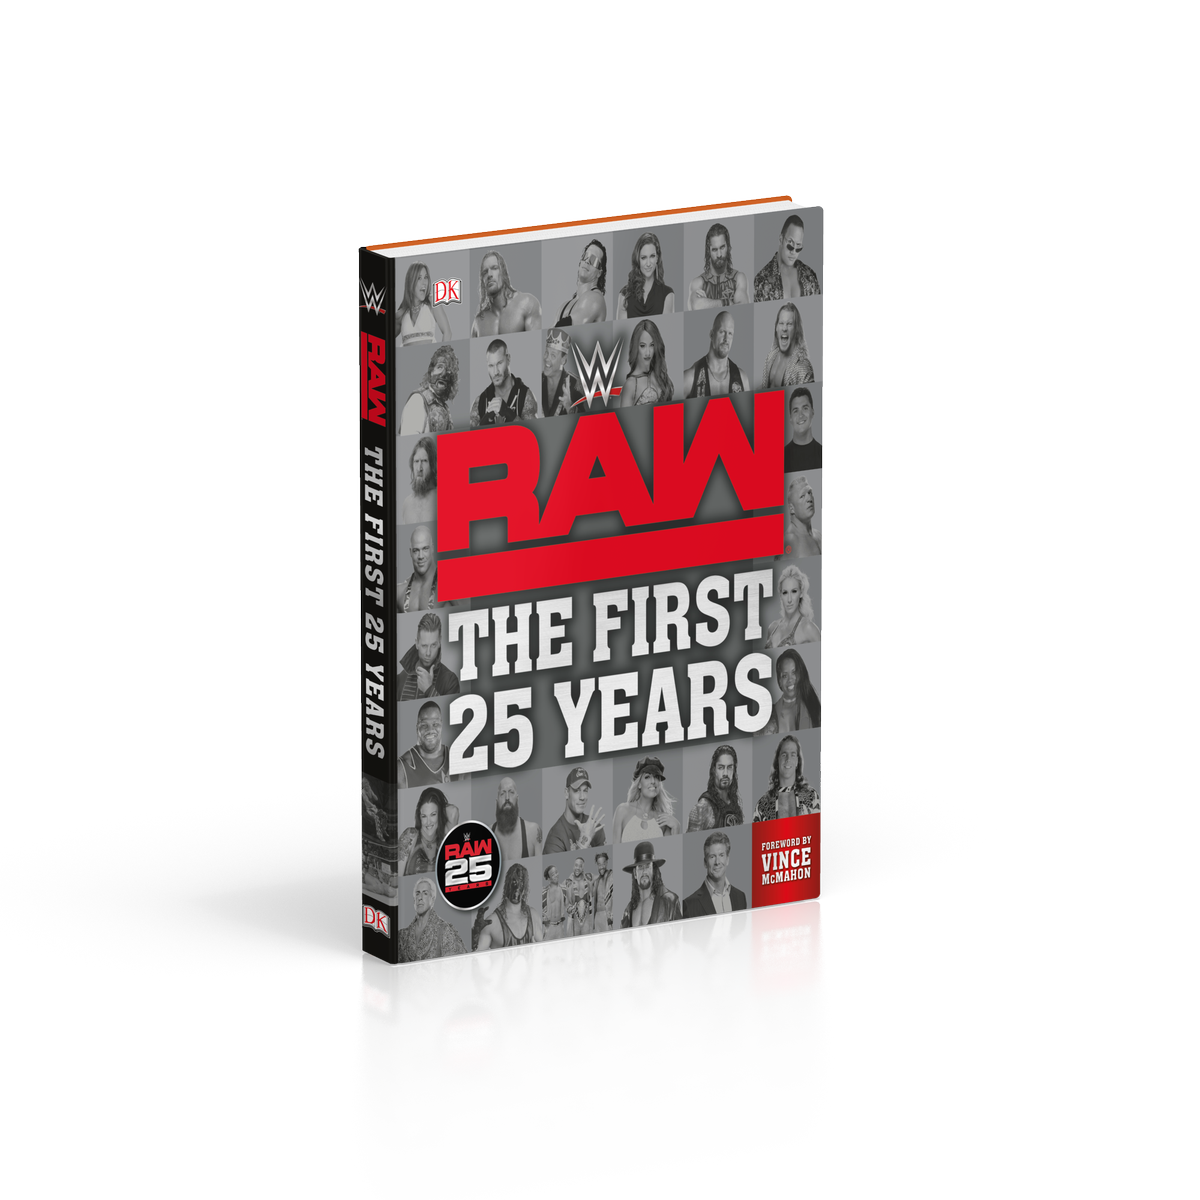 #RAW: The First 25 Years featuring highlights from tonights #RAW25 is available now for pre-order! wwe.me/VC6rTm